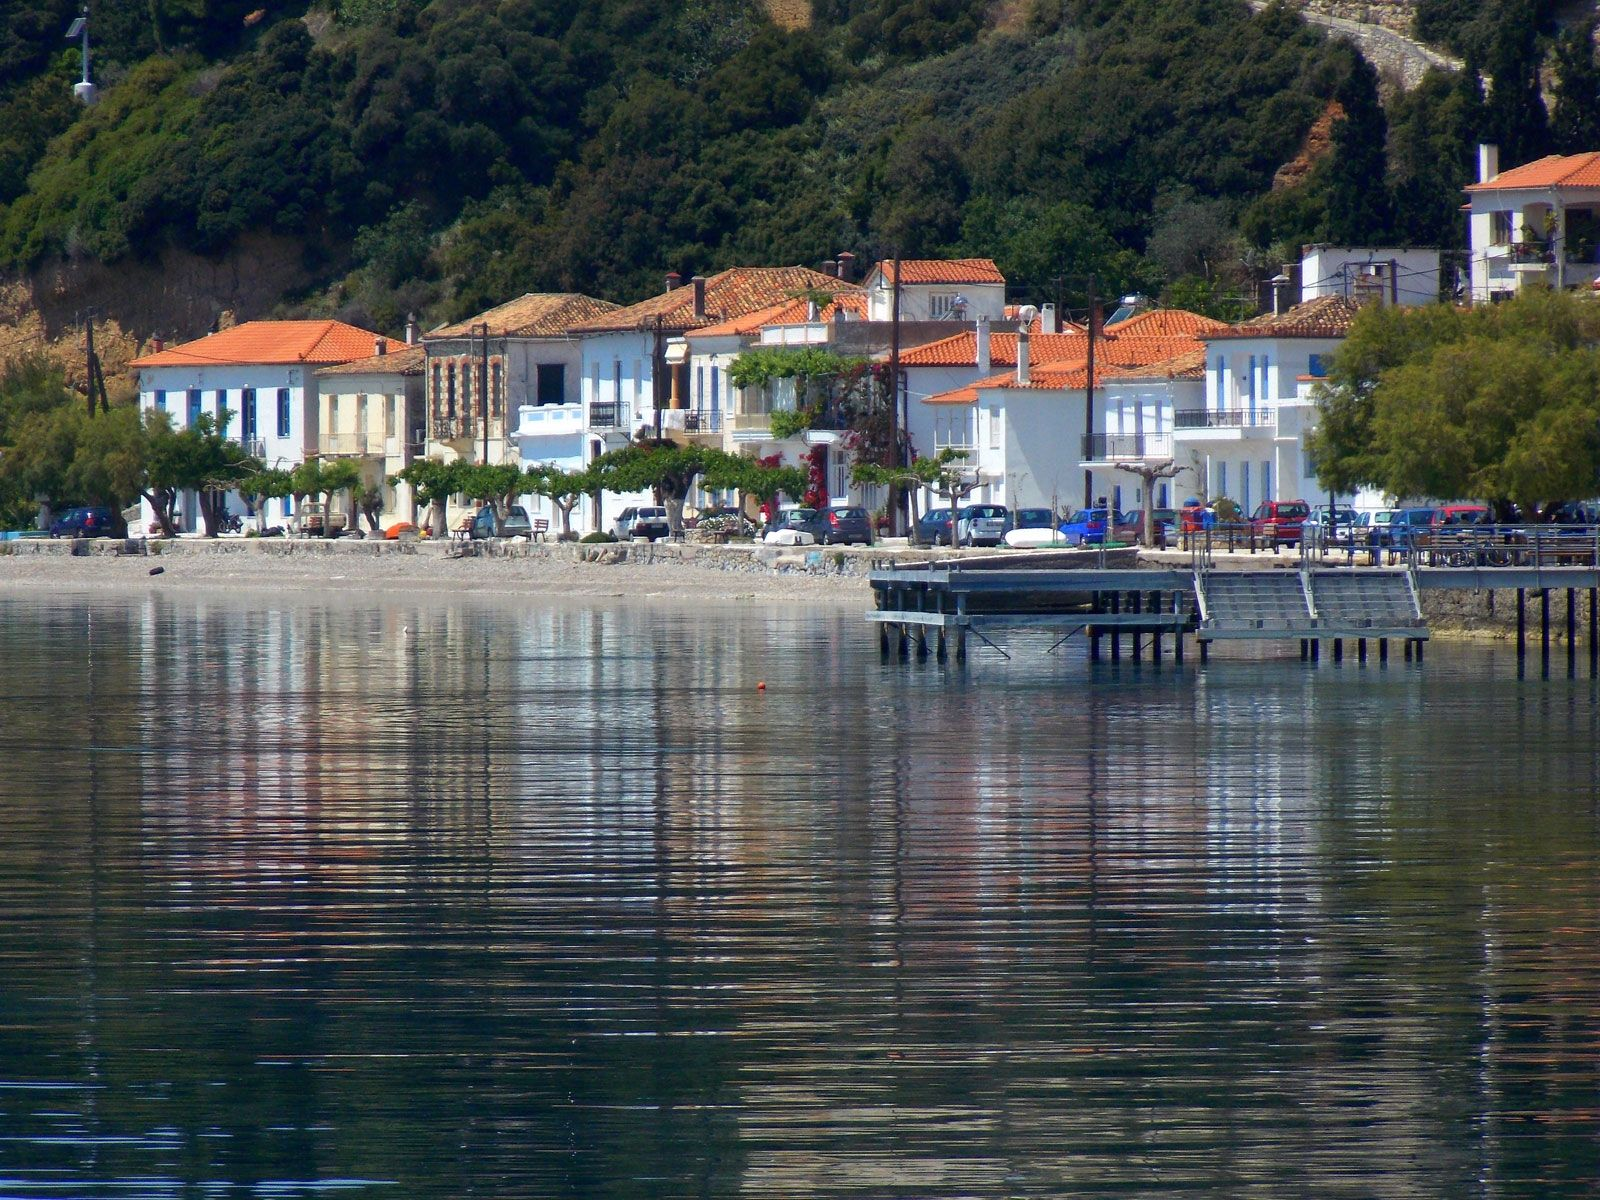 Limni is perhaps one of the most interesting choices available in Evia